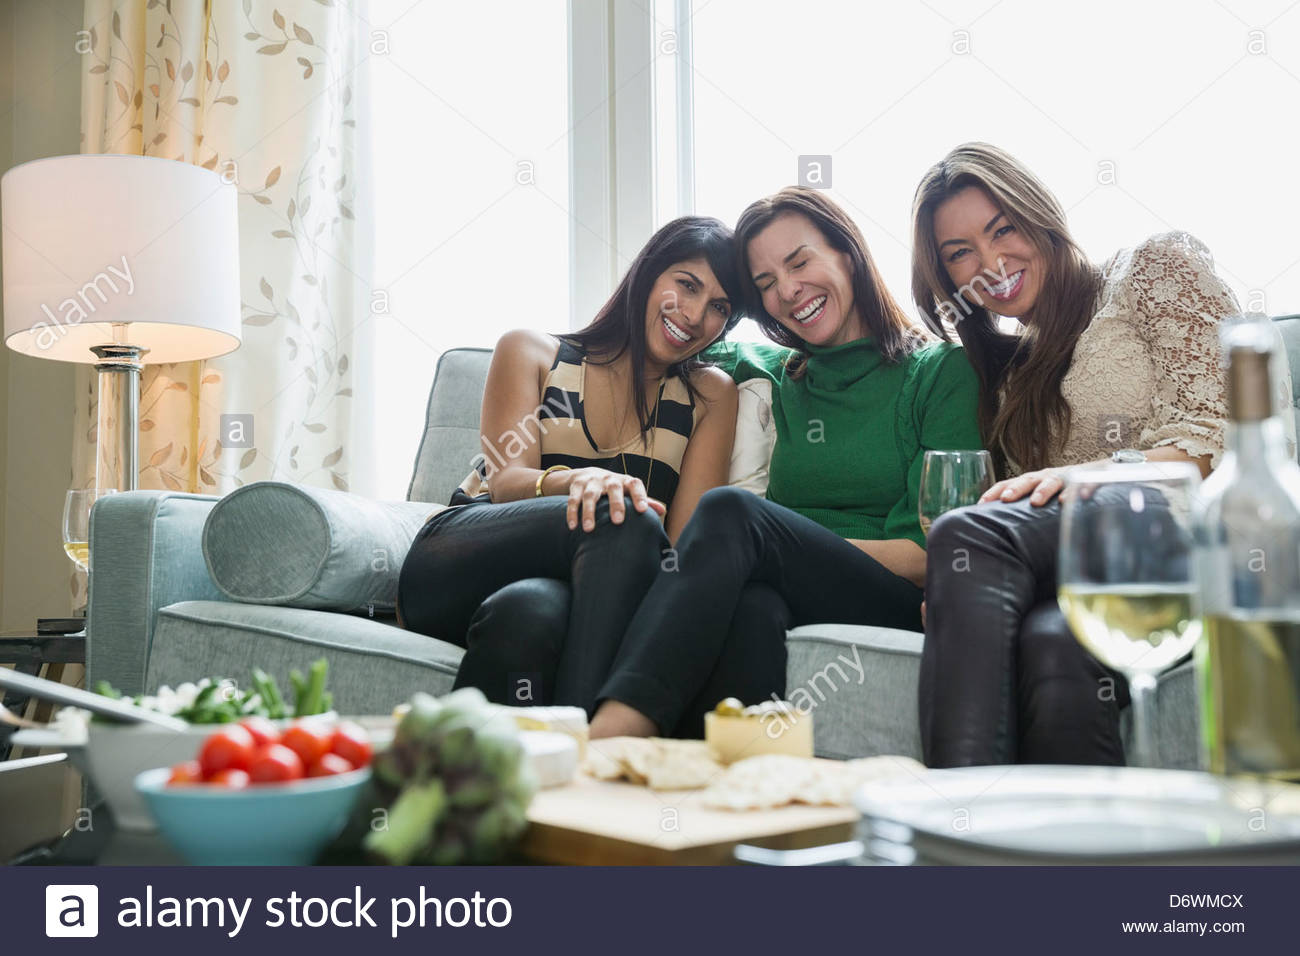 Happy mature women enjoying house party with food in foreground - Stock Image